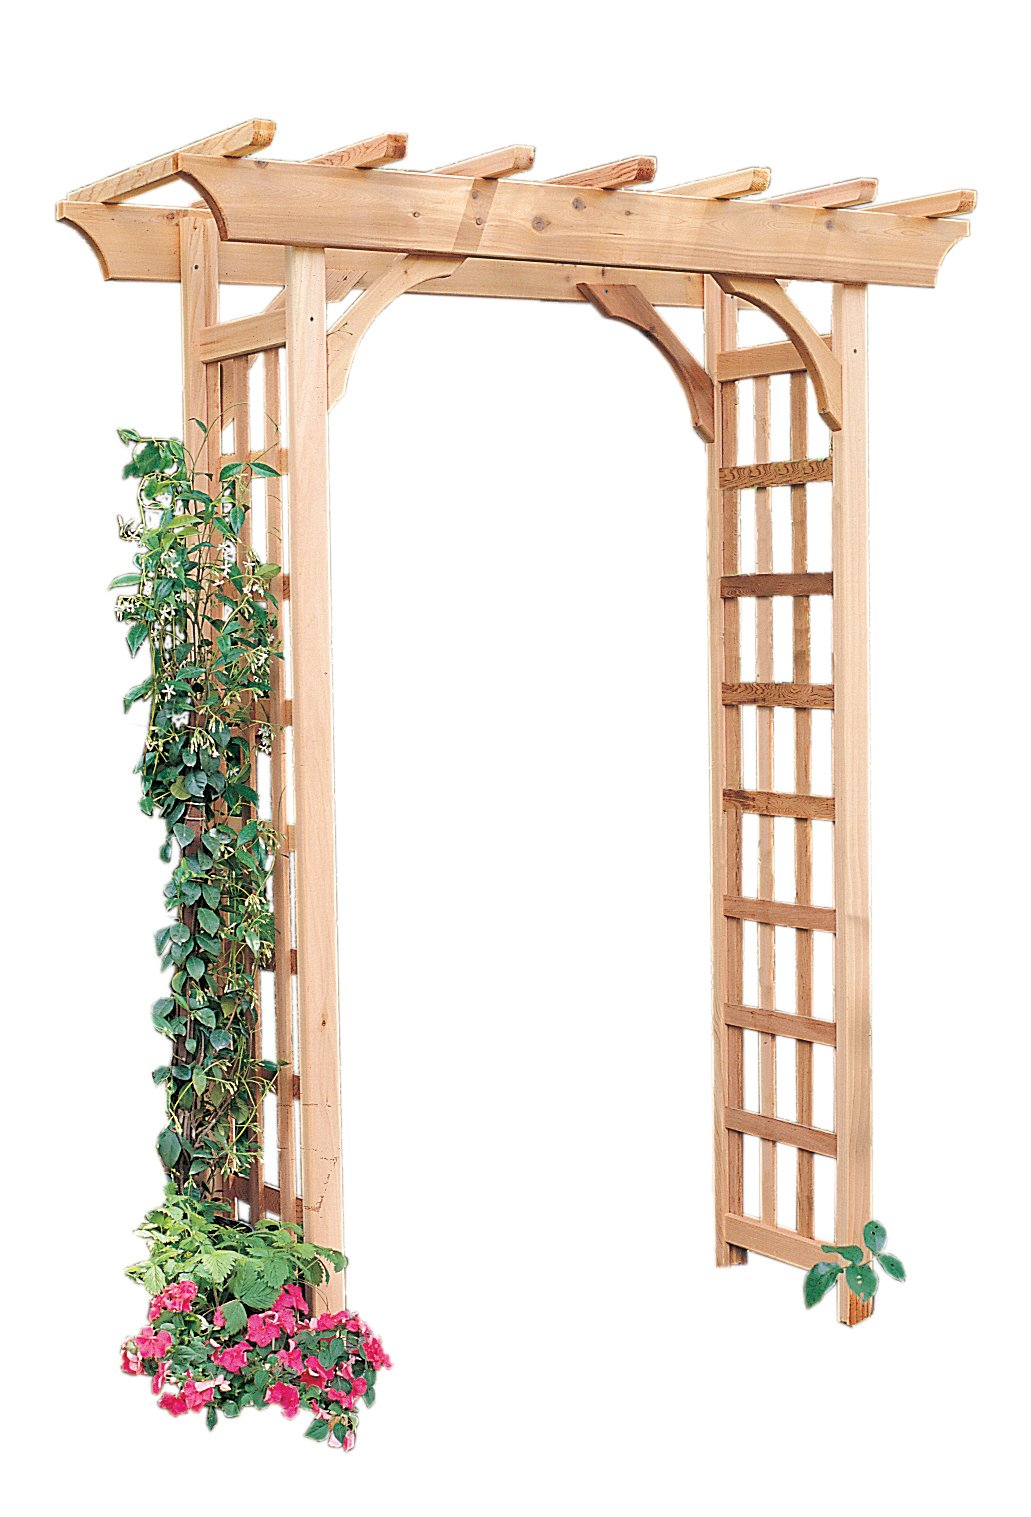 Arboria Rosedale Garden Arbor Cedar Wood Over 7ft High Pergola Design with Curved Corners by Arboria